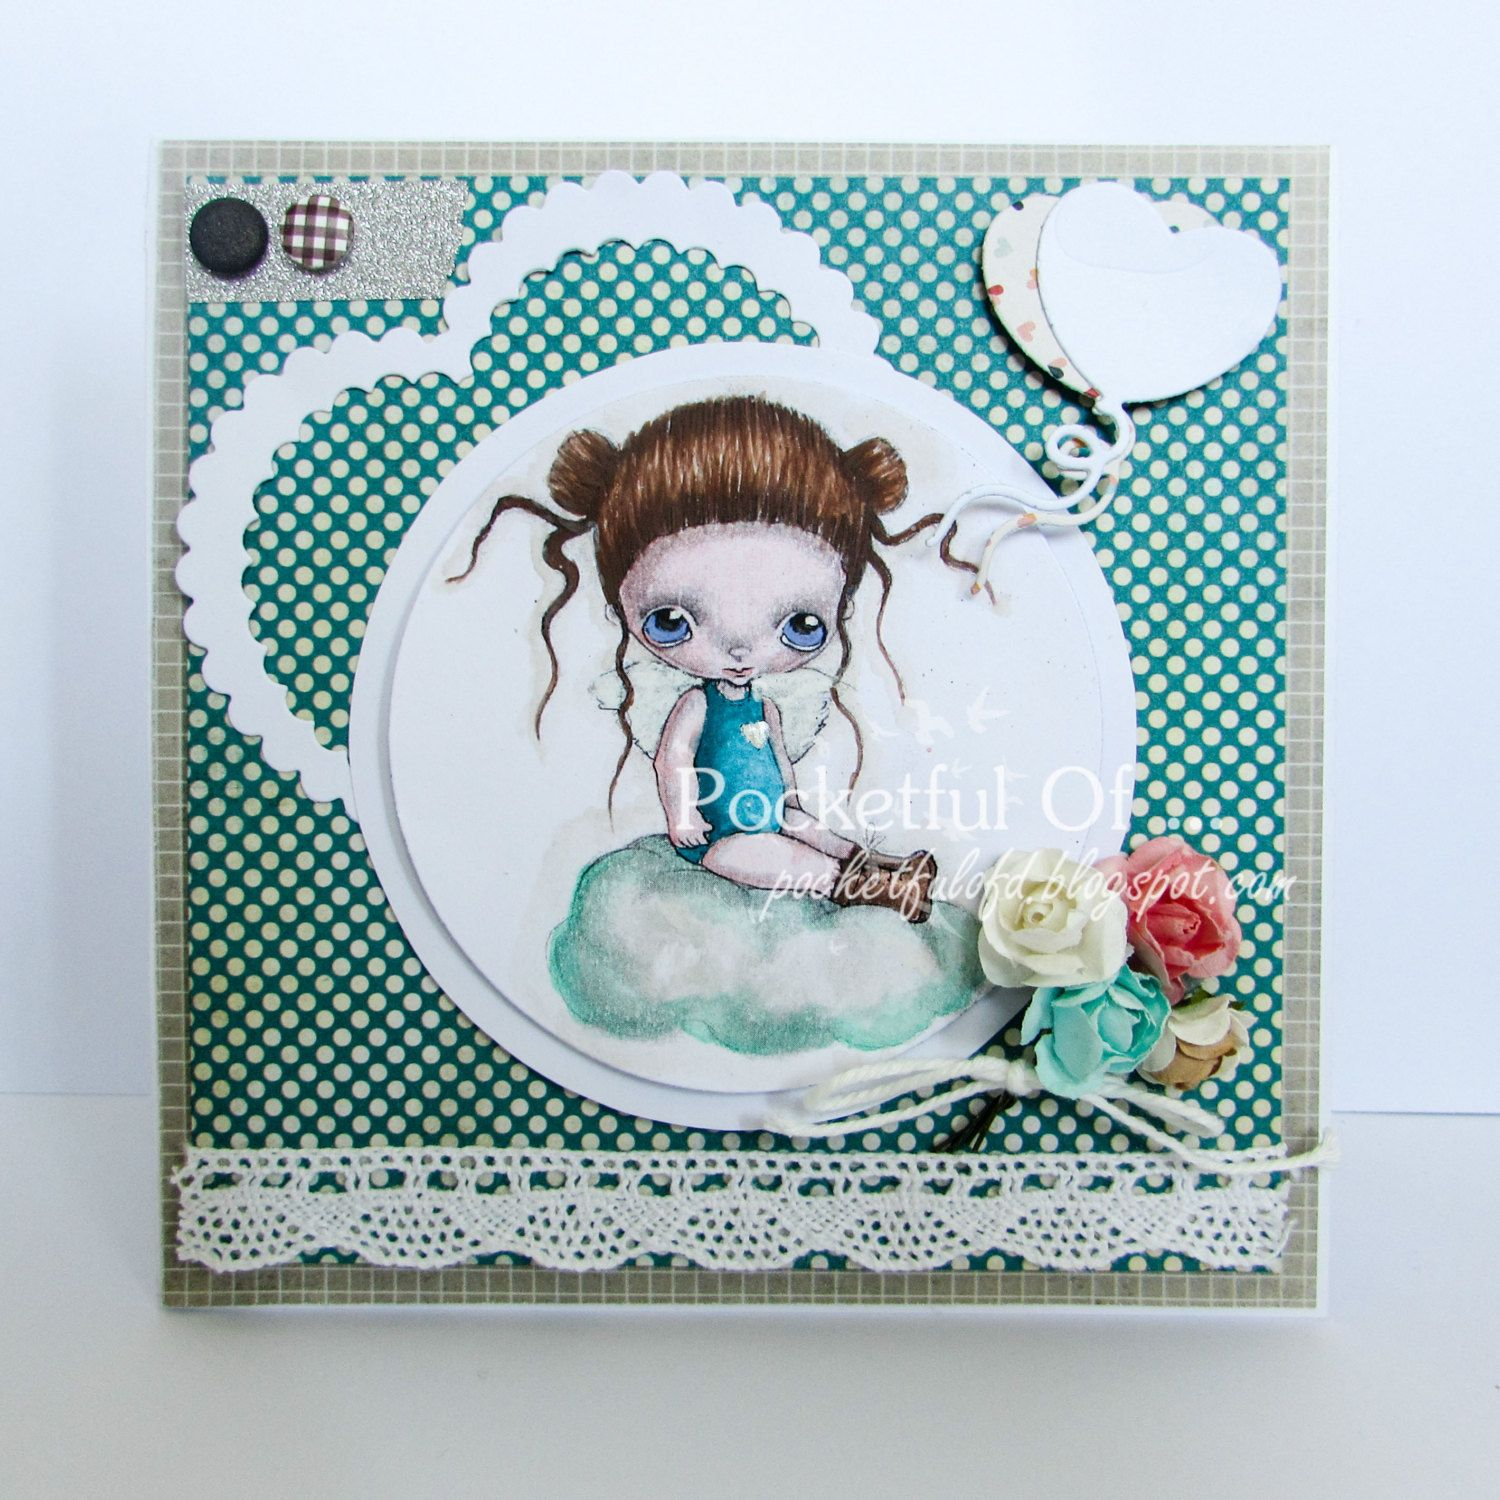 Handmade Baby Girl Card Greeting Cardhand Colored Ppinkydolls